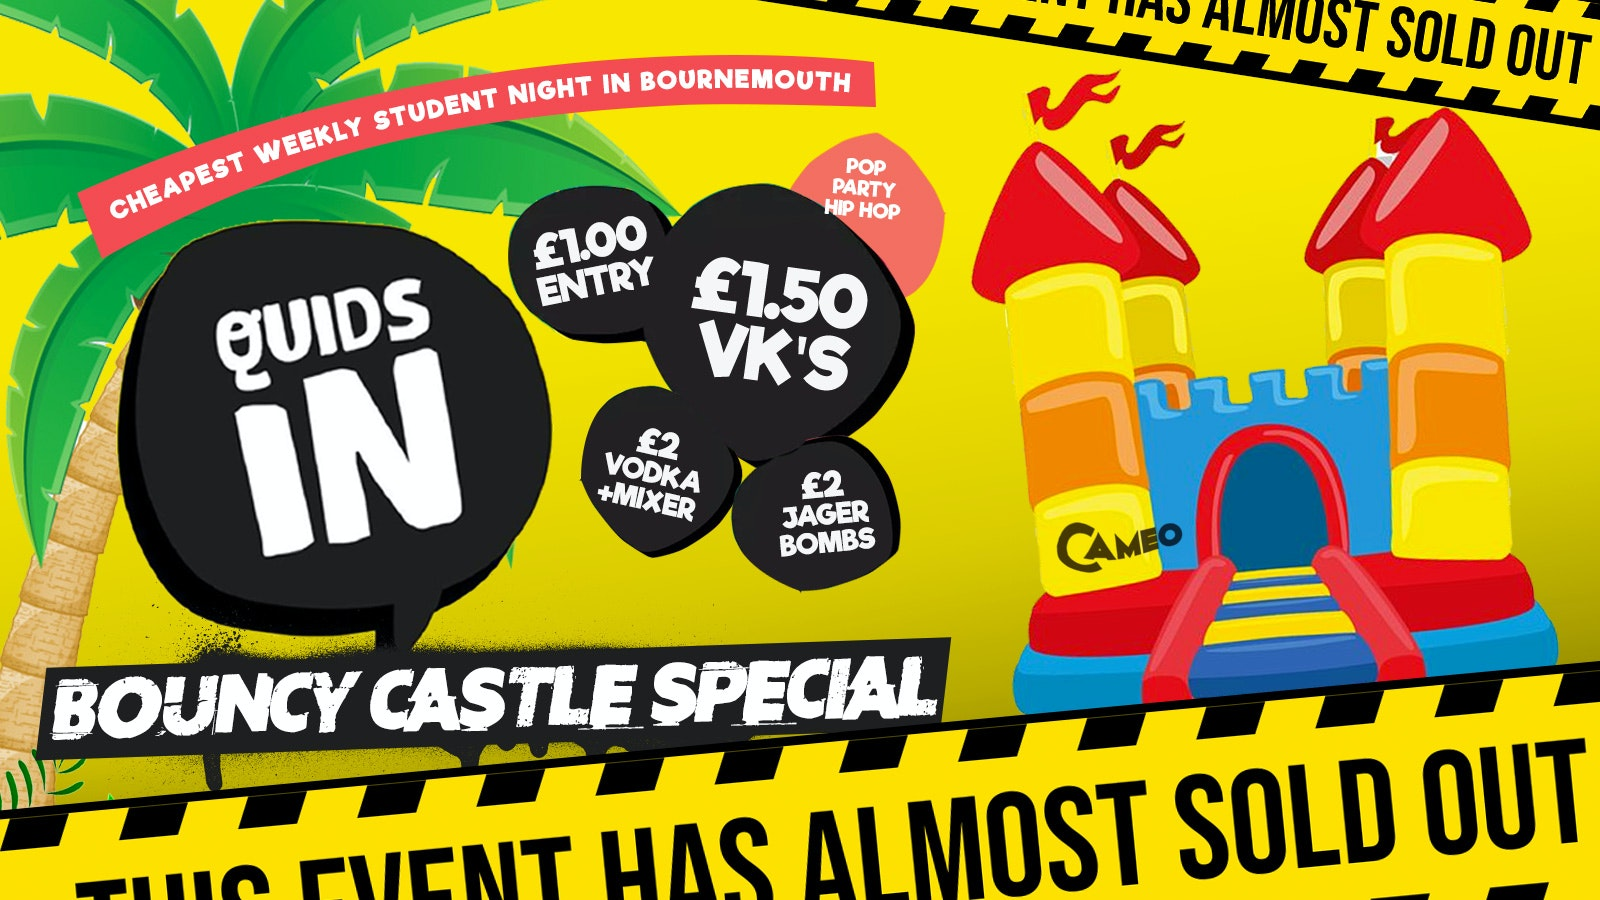 Quids In // Bouncy Castle (Main Room) // 22.10 // Cameo Every Tuesday